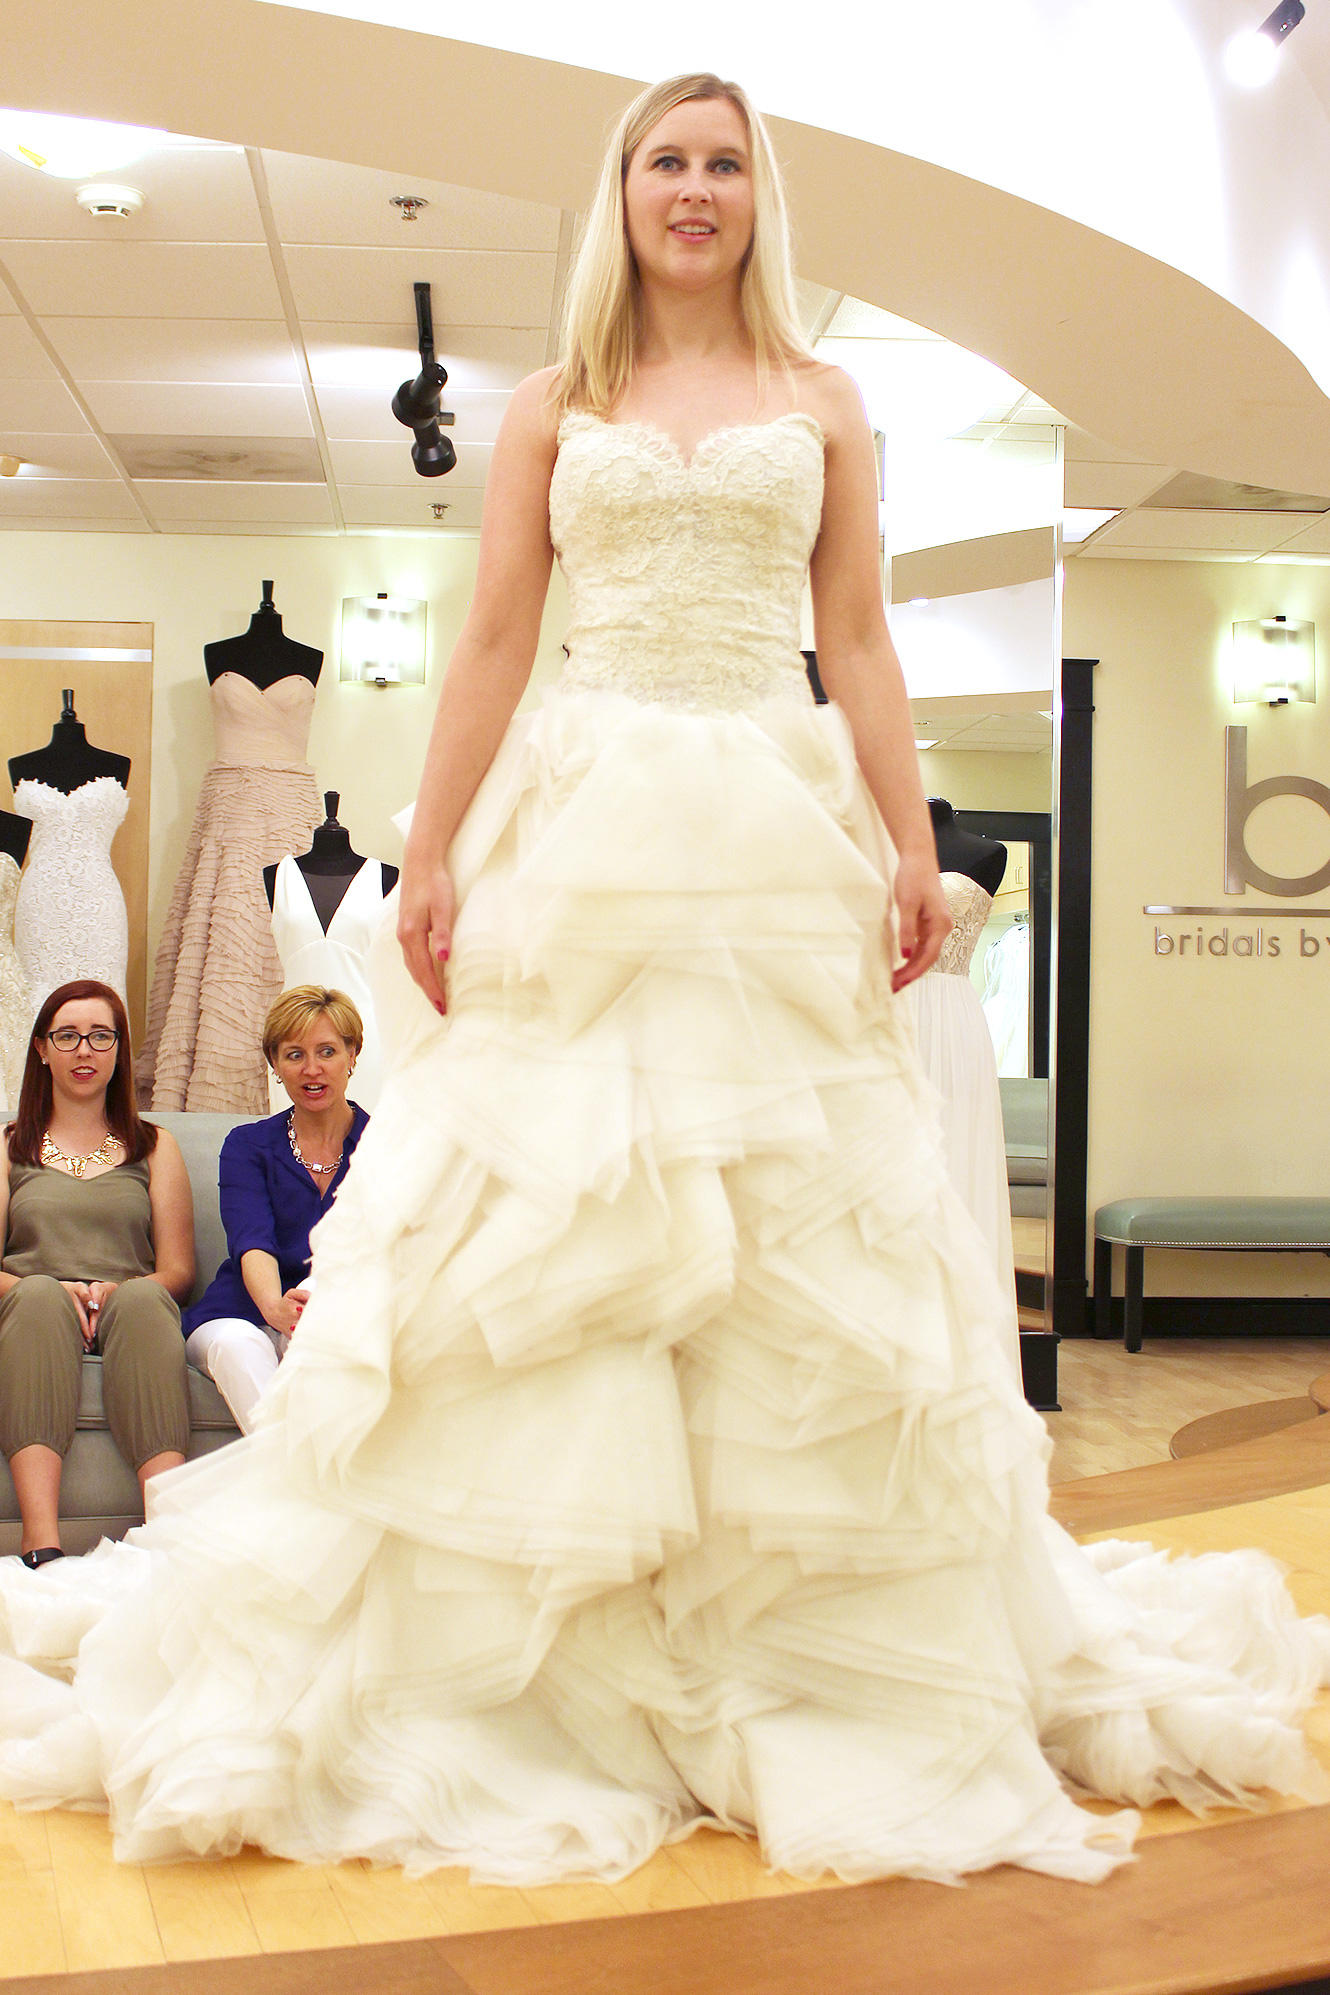 Ball Gown Wedding Dress Photo Gallery | Say Yes to the Dress | TLC